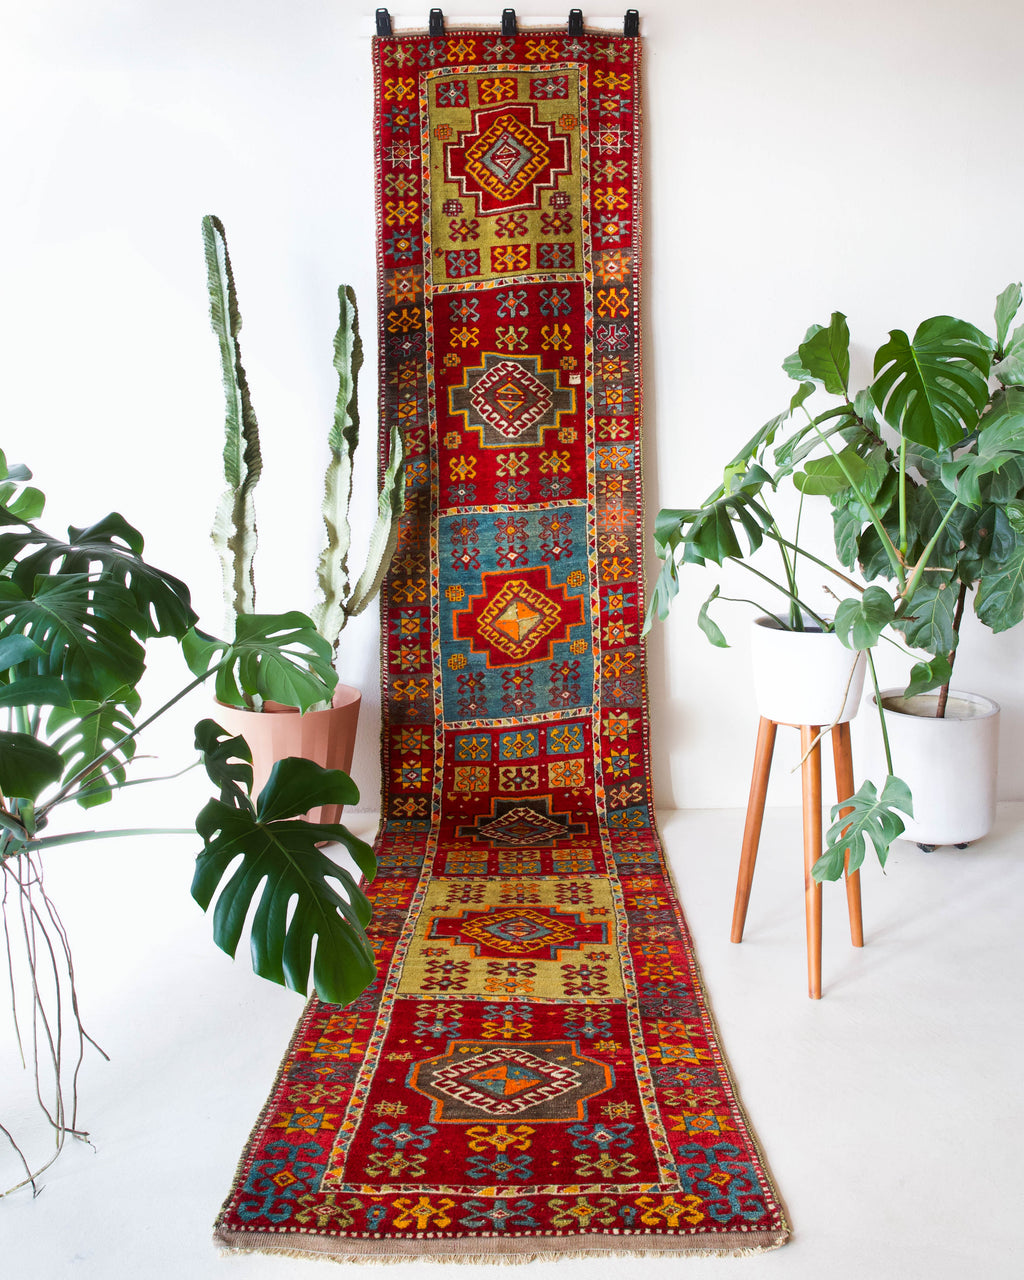 Vintage Turkish runner rug in a living room setting, pile rug, Turkish rug, vintage rug, portland, rug shop, bright colors, wild shaman, soft rug, bold color, Portland, Oregon, rug store, rug shop, local shop, antique rug